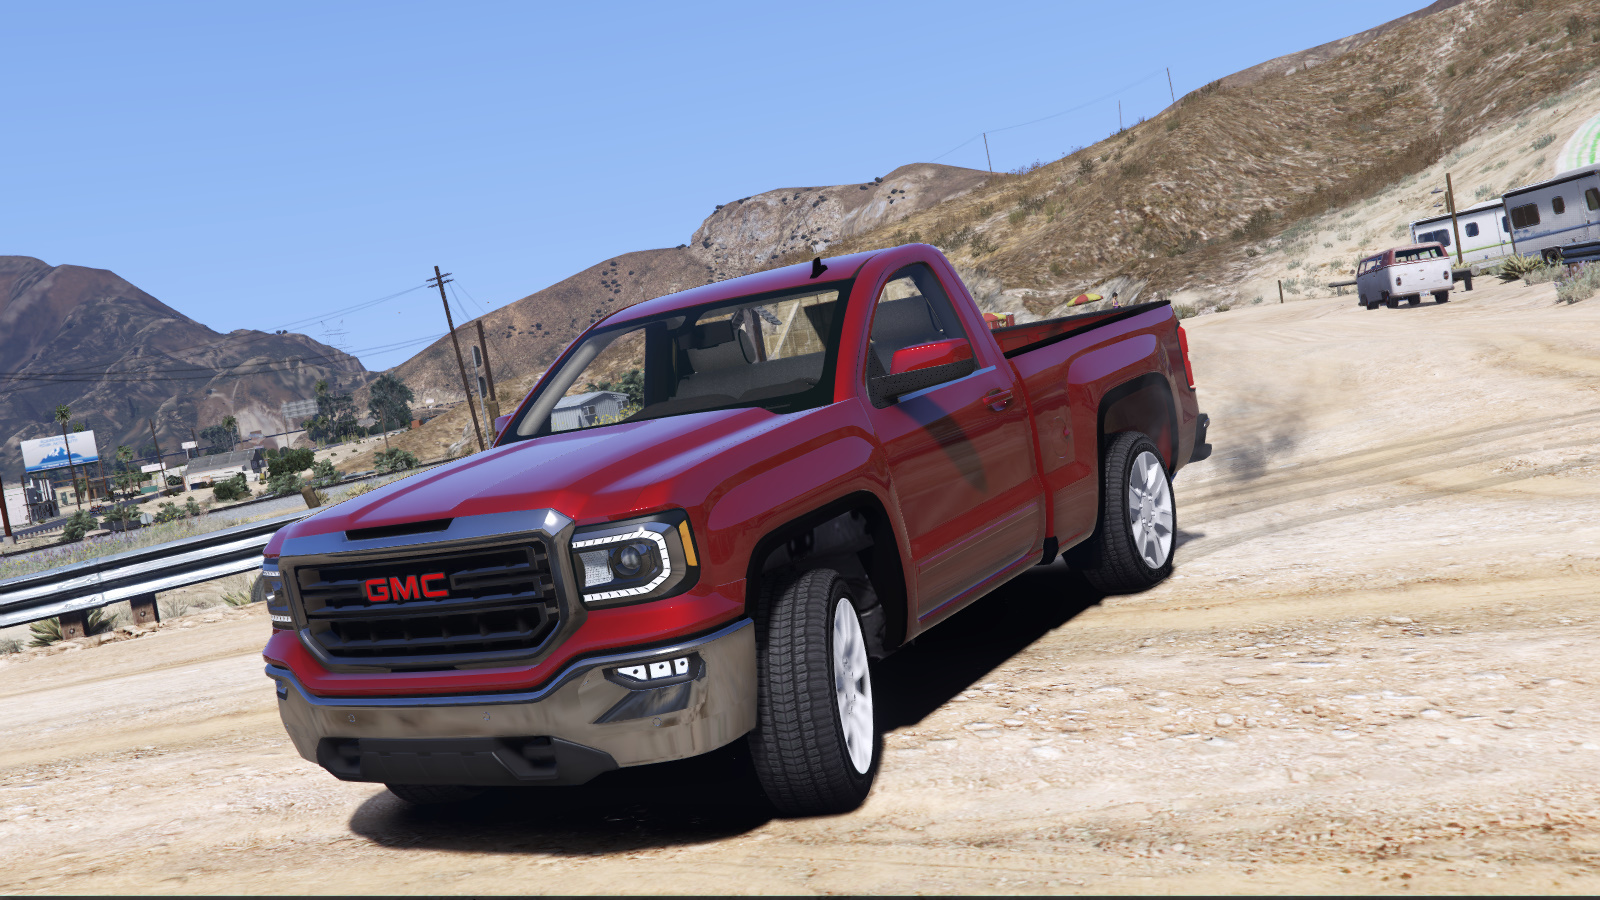 gmc sierra 2018 single cab unlocked gta5. Black Bedroom Furniture Sets. Home Design Ideas